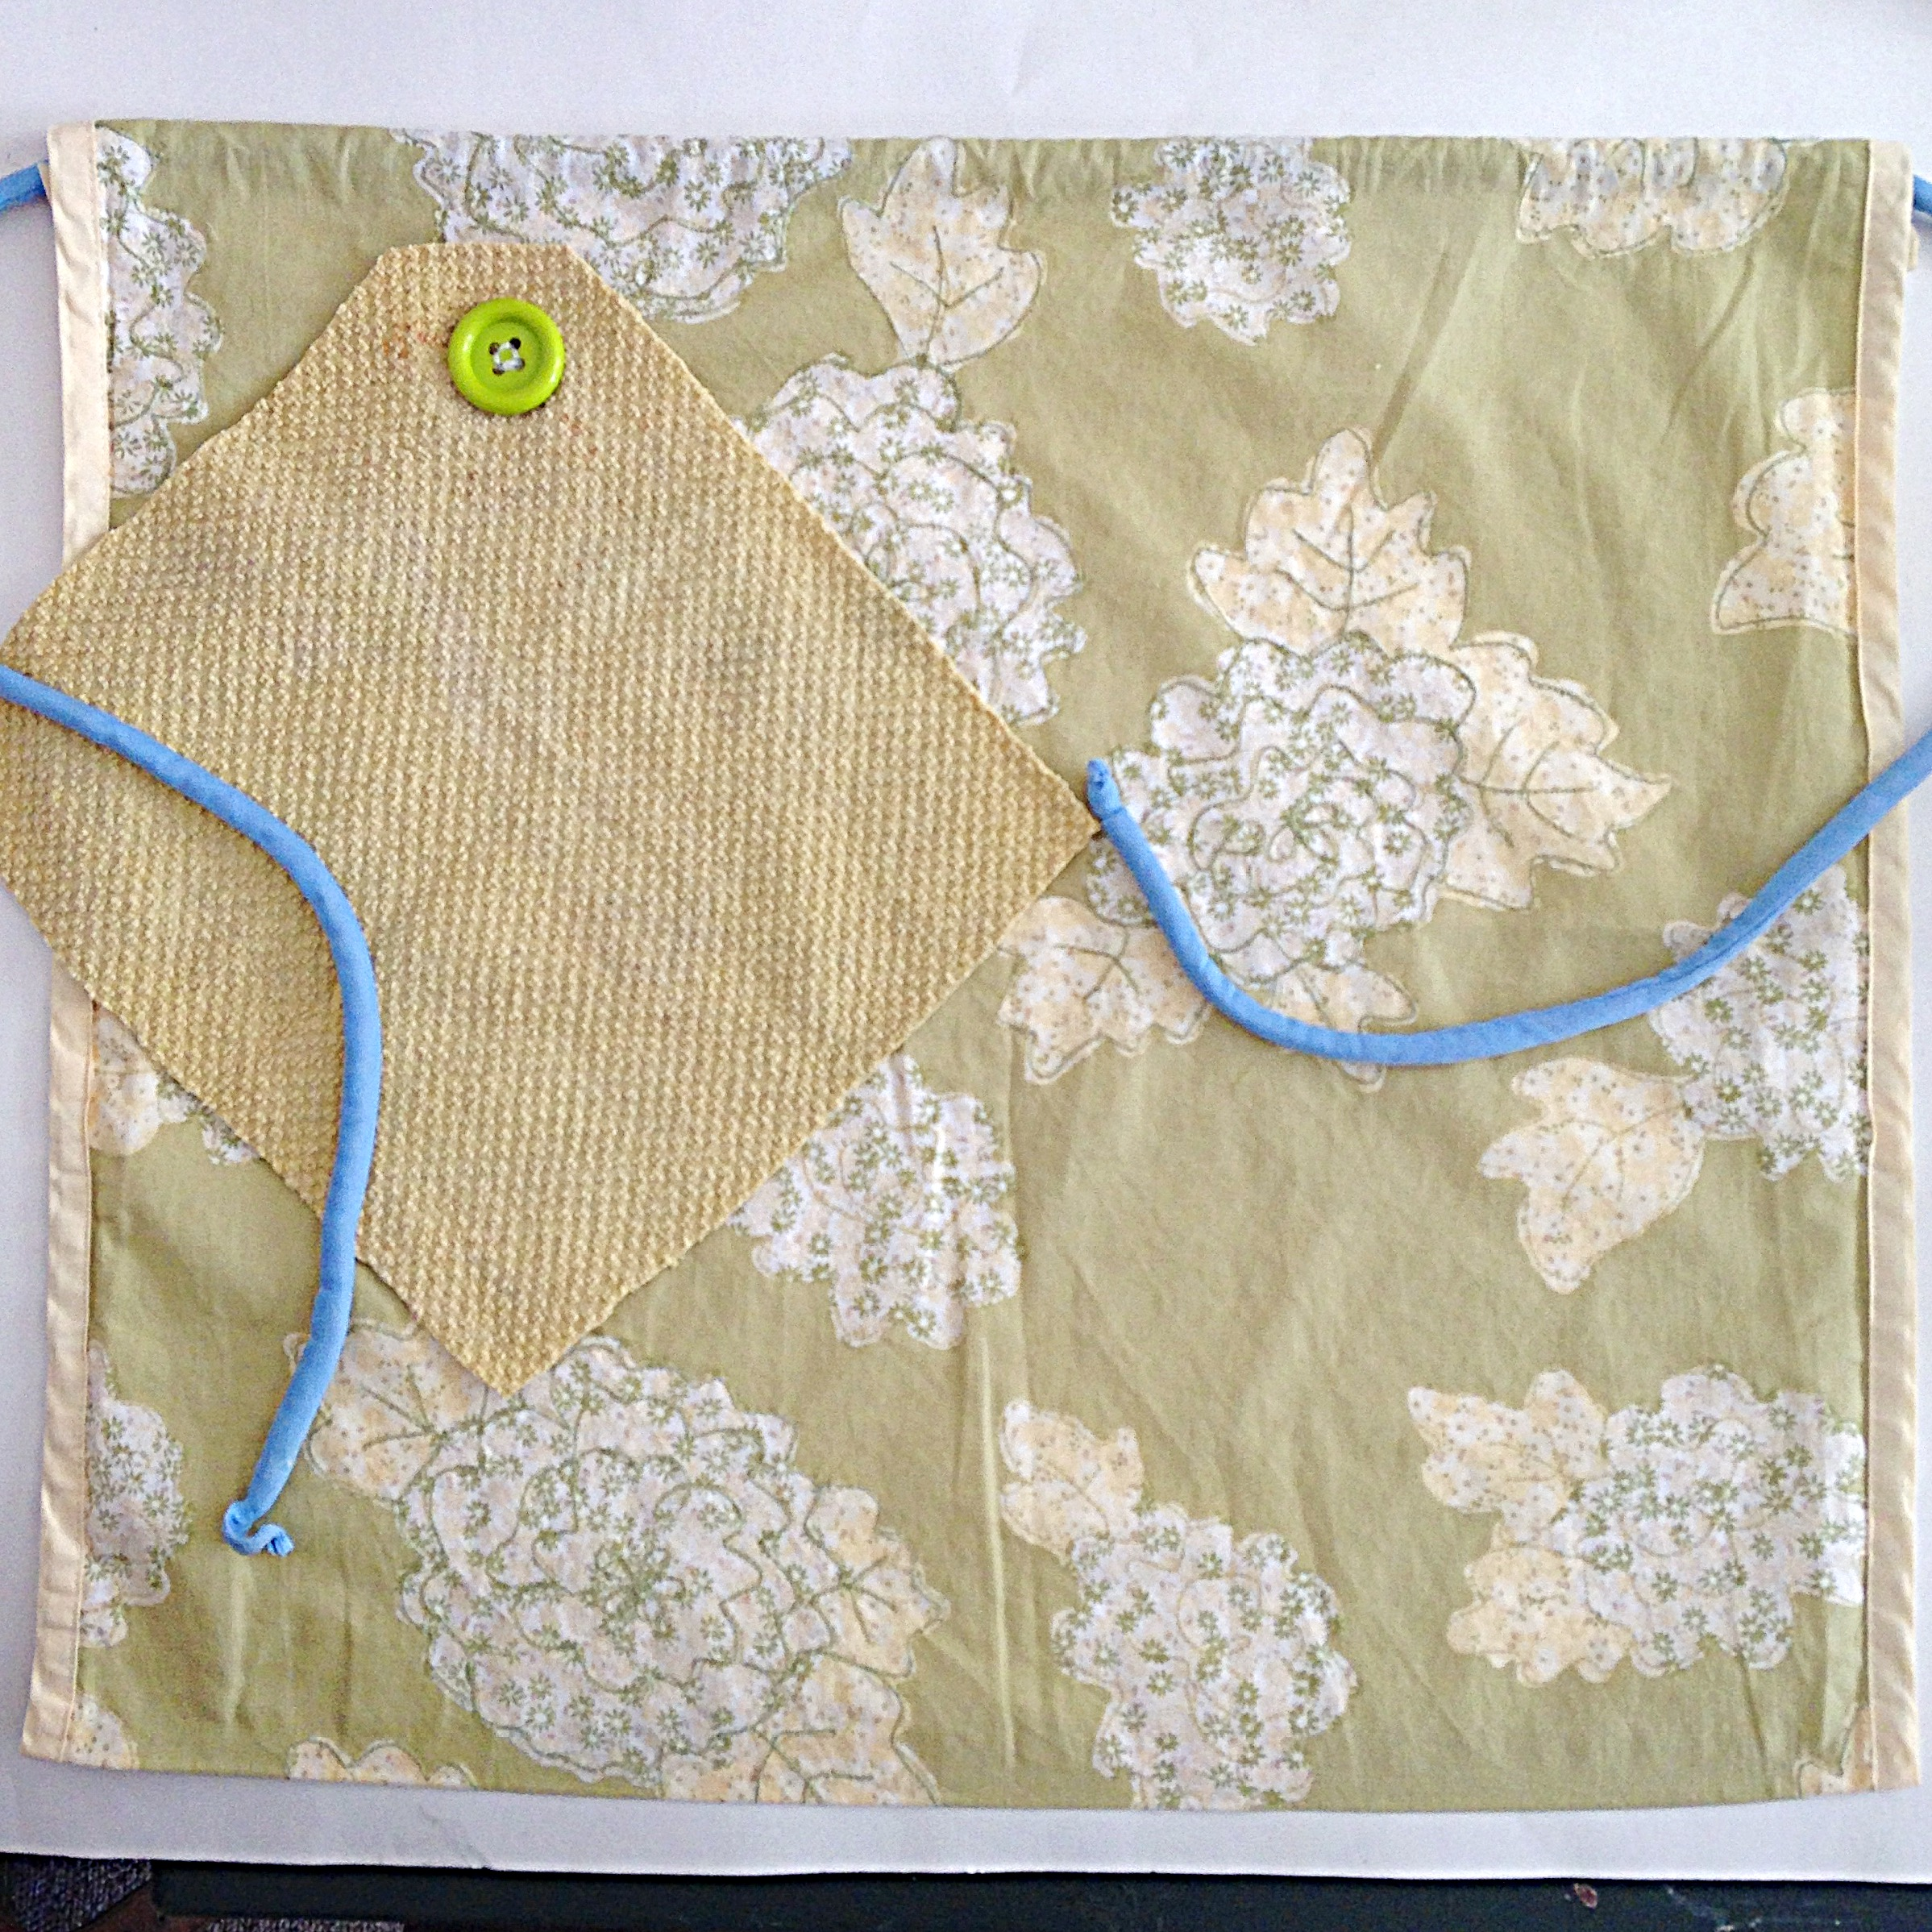 Make a Vintage-Inspired No-Sew Apron